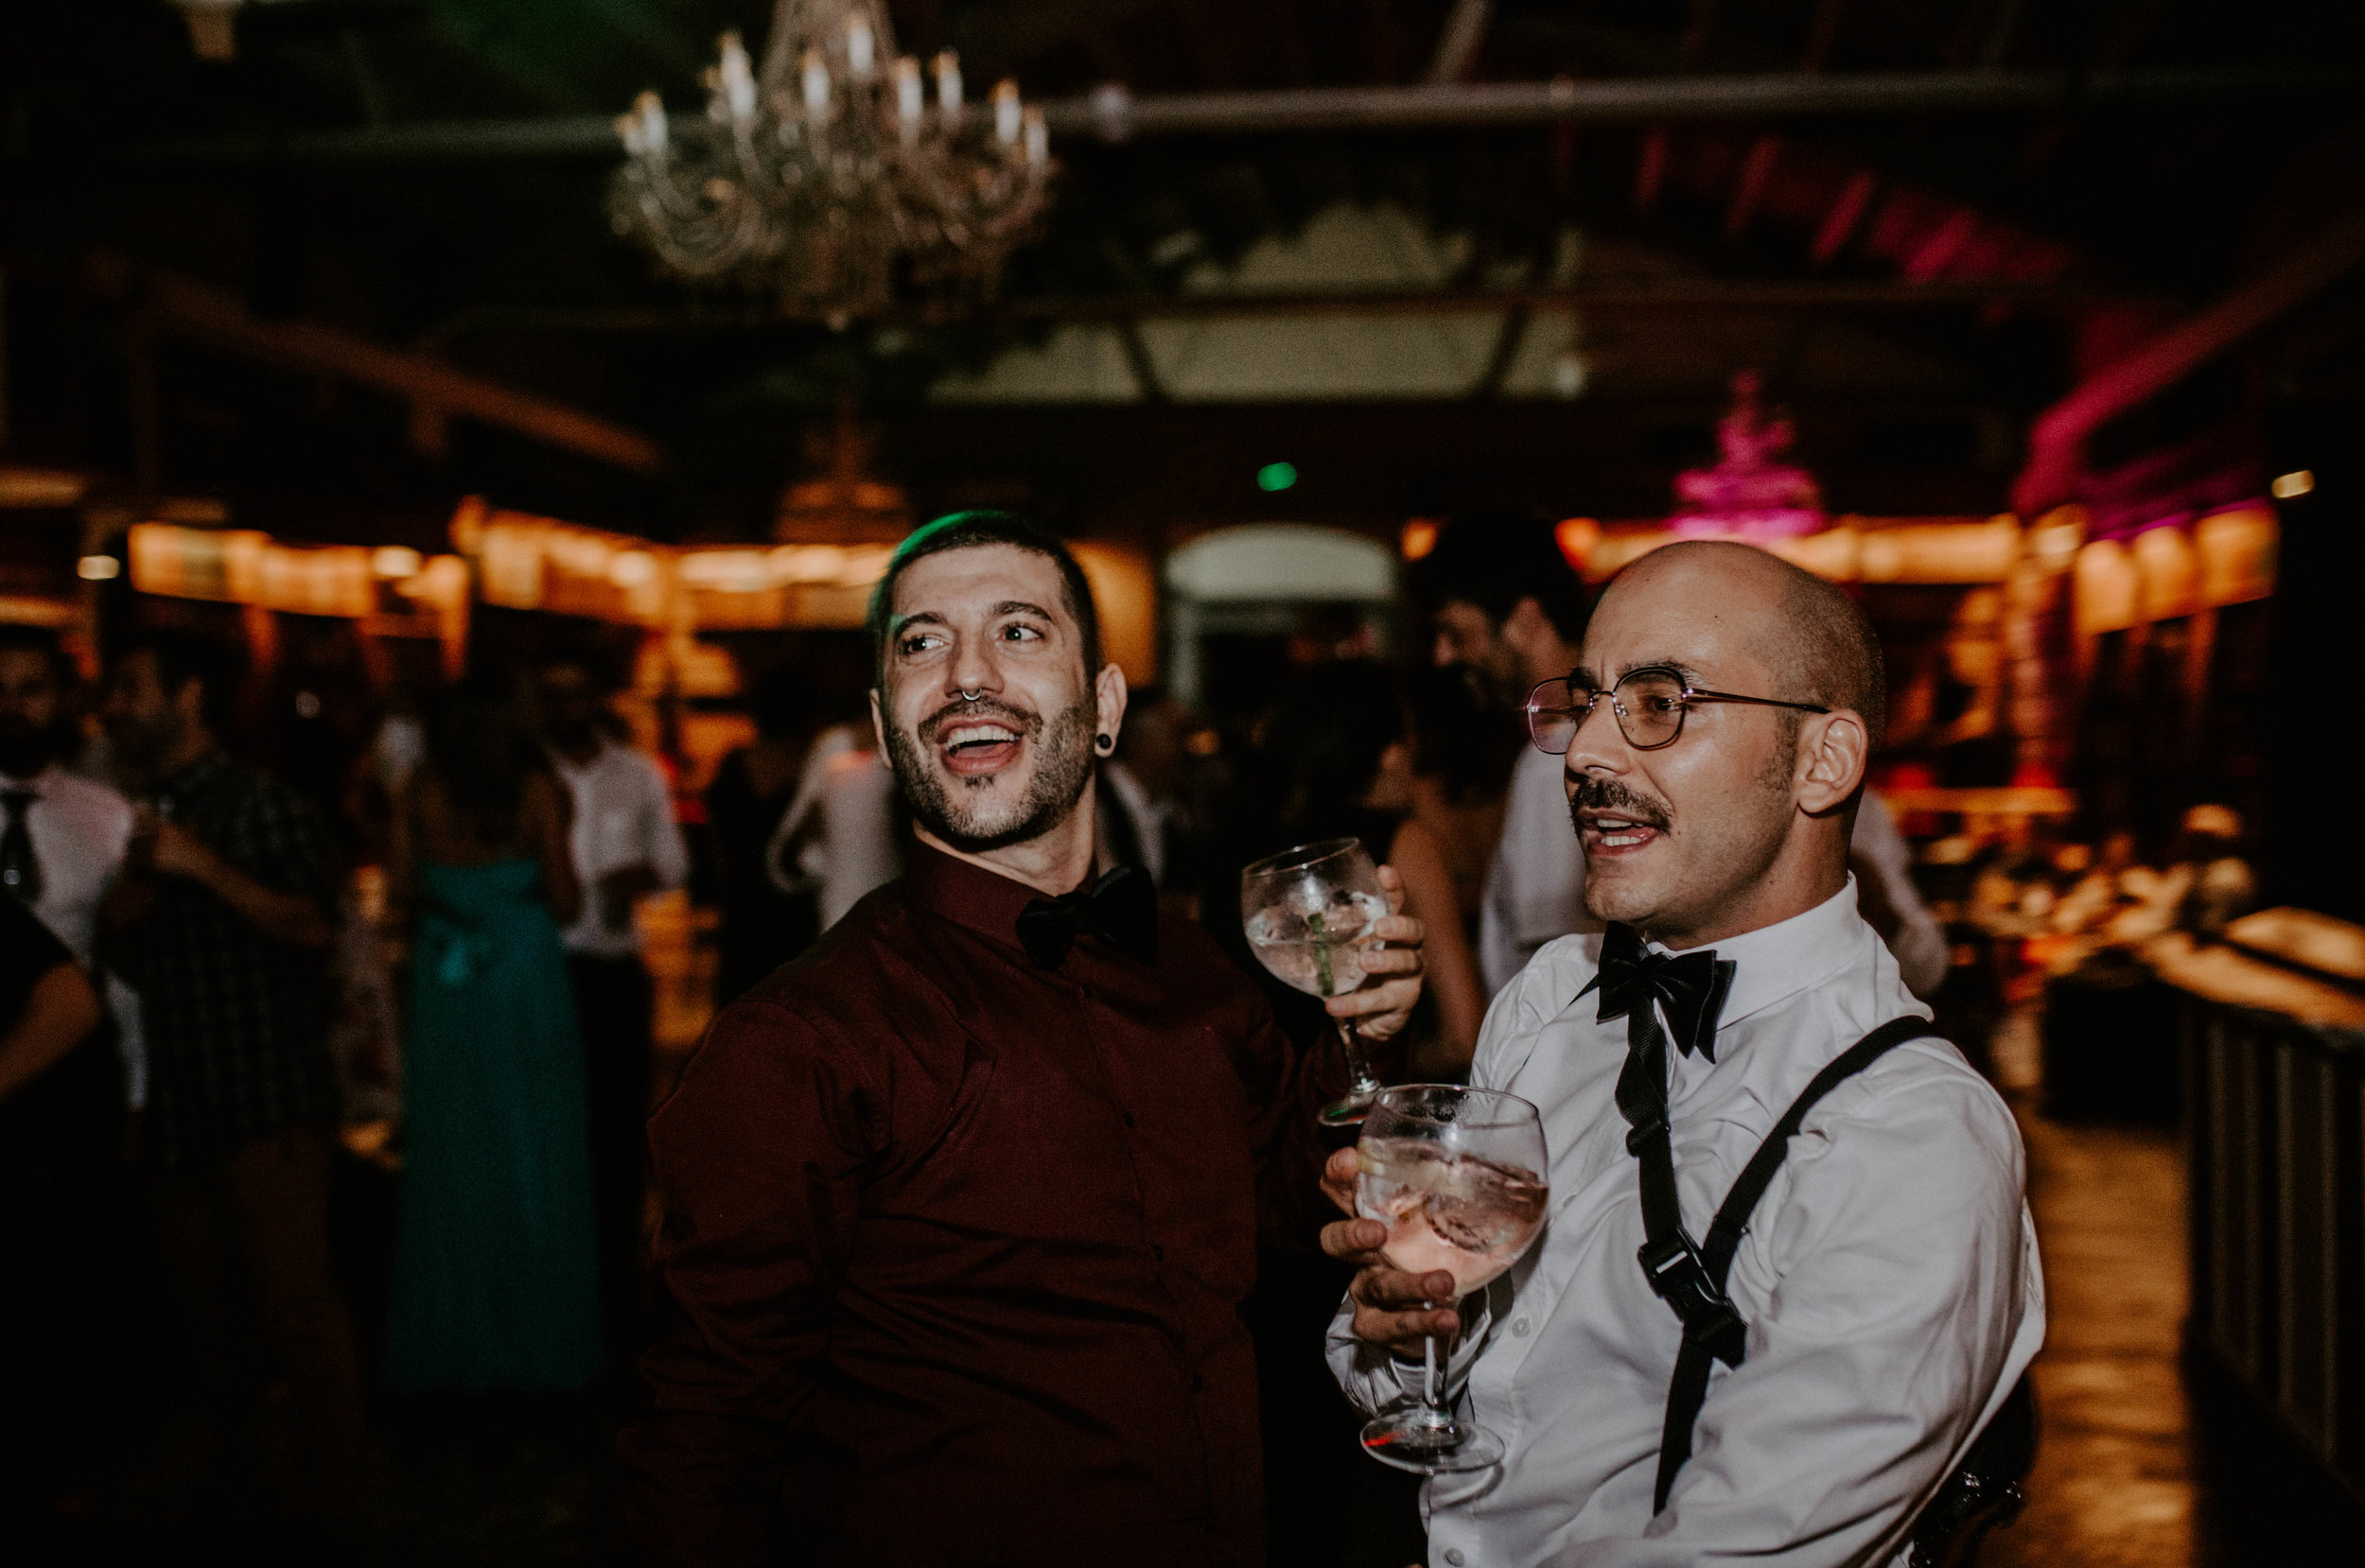 thenortherngirlphotography_bodasindustriales_bodasdiferentes_weddingphotographer_spanishphotographer_spanisgweddingphotographer_happyendings_mercantic_elsiglomercantic_antichrist_love_neon_weddingtattoo_CYNTHIAMANOLO-995.jpg